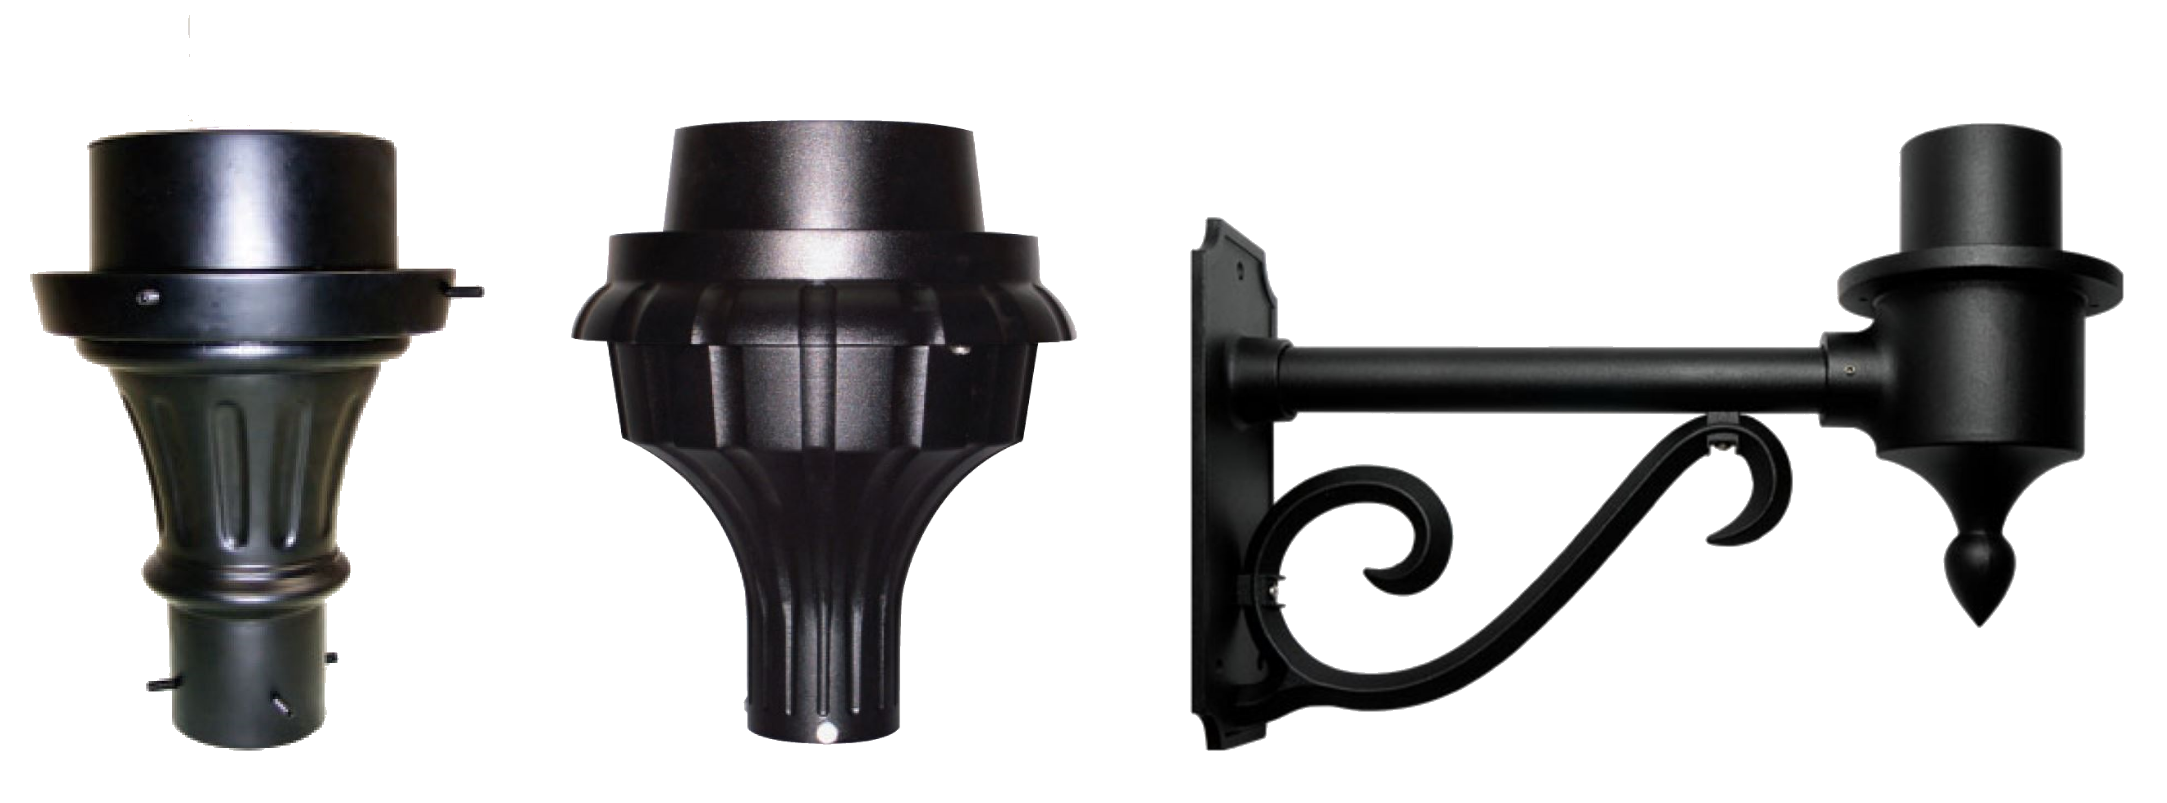 Different pole top fitter options and wall mount arm option.